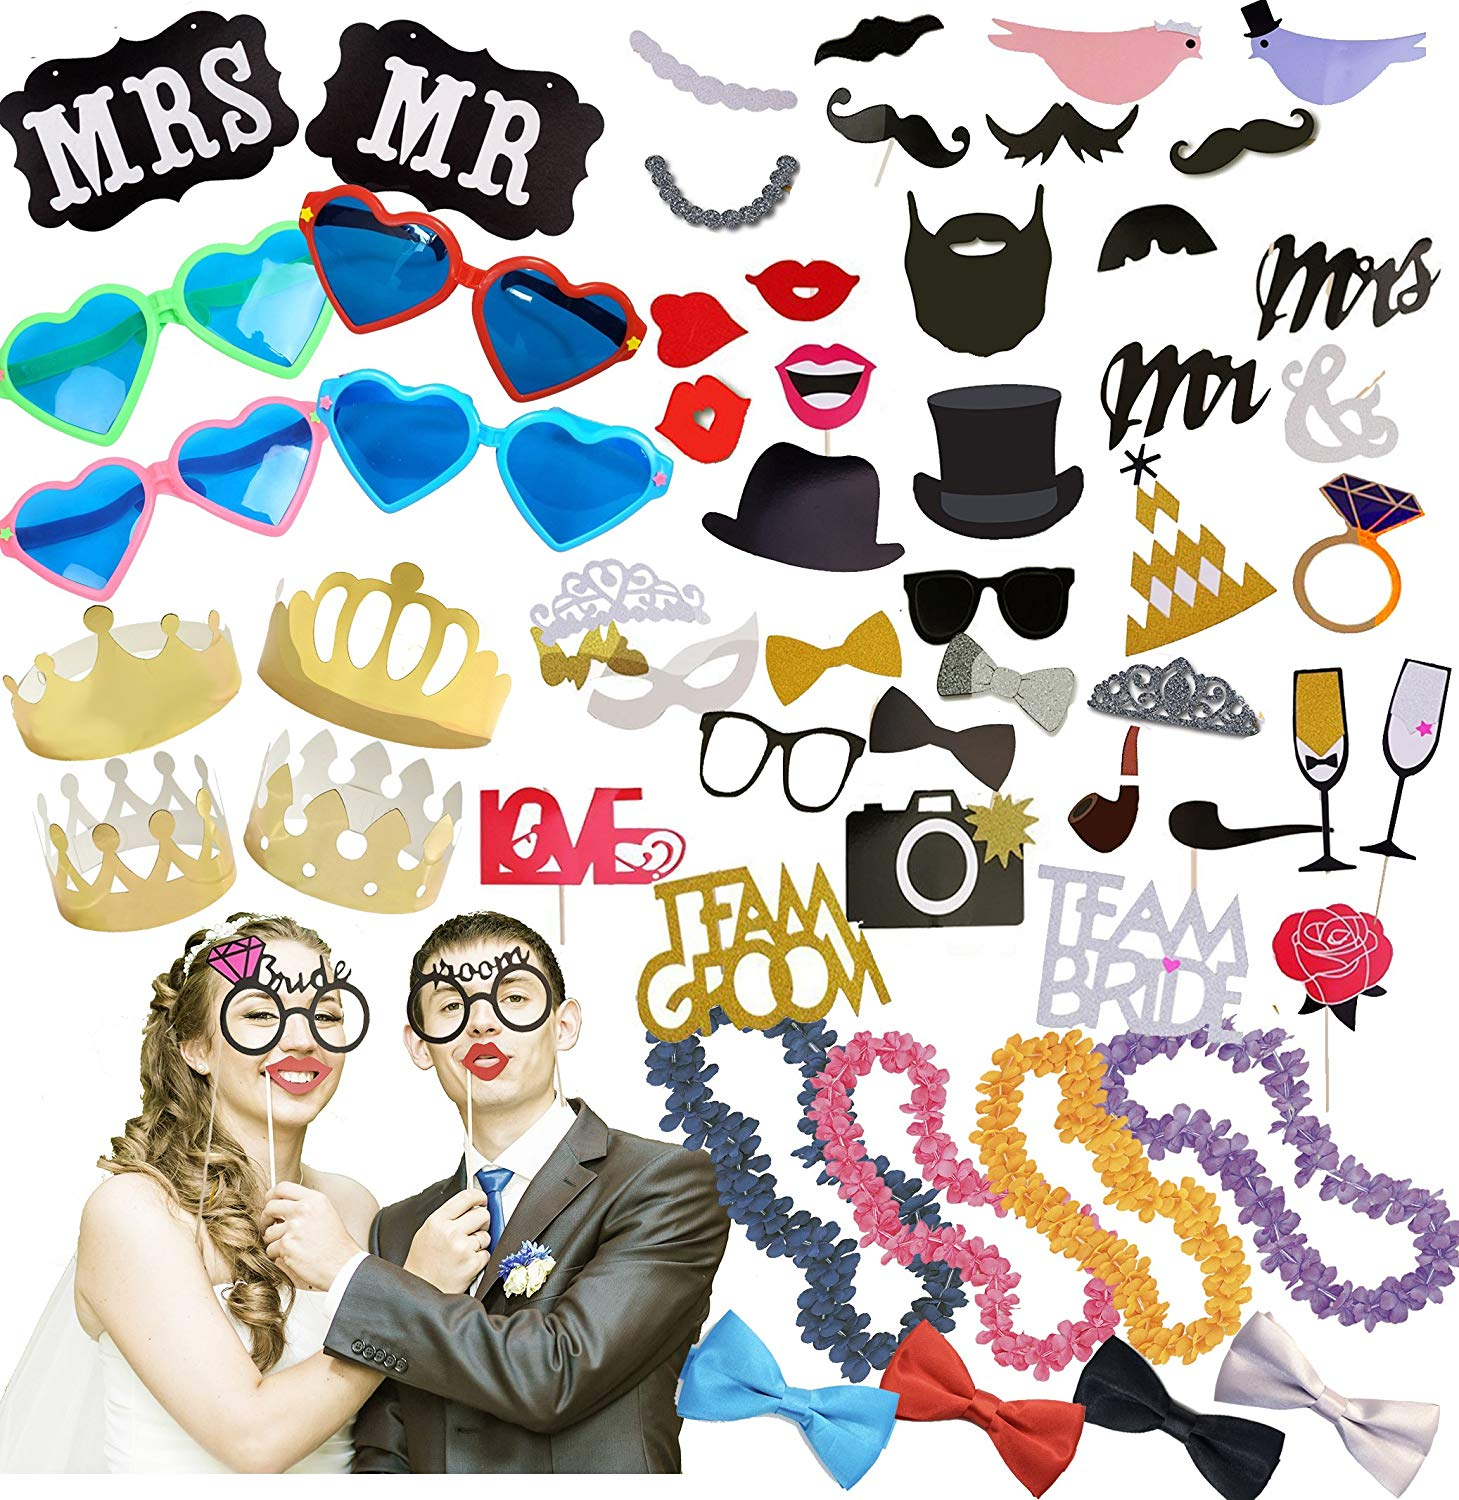 Wedding Photo Booth Props Kit | Paper and 3D Wedding Decorations and Accessories for Precious Memories; Jumbo Heart Glasses; Gold Crowns; Hawaiian Leis; Bow Ties; Mr. & Mrs. Sign by Scapa Pro